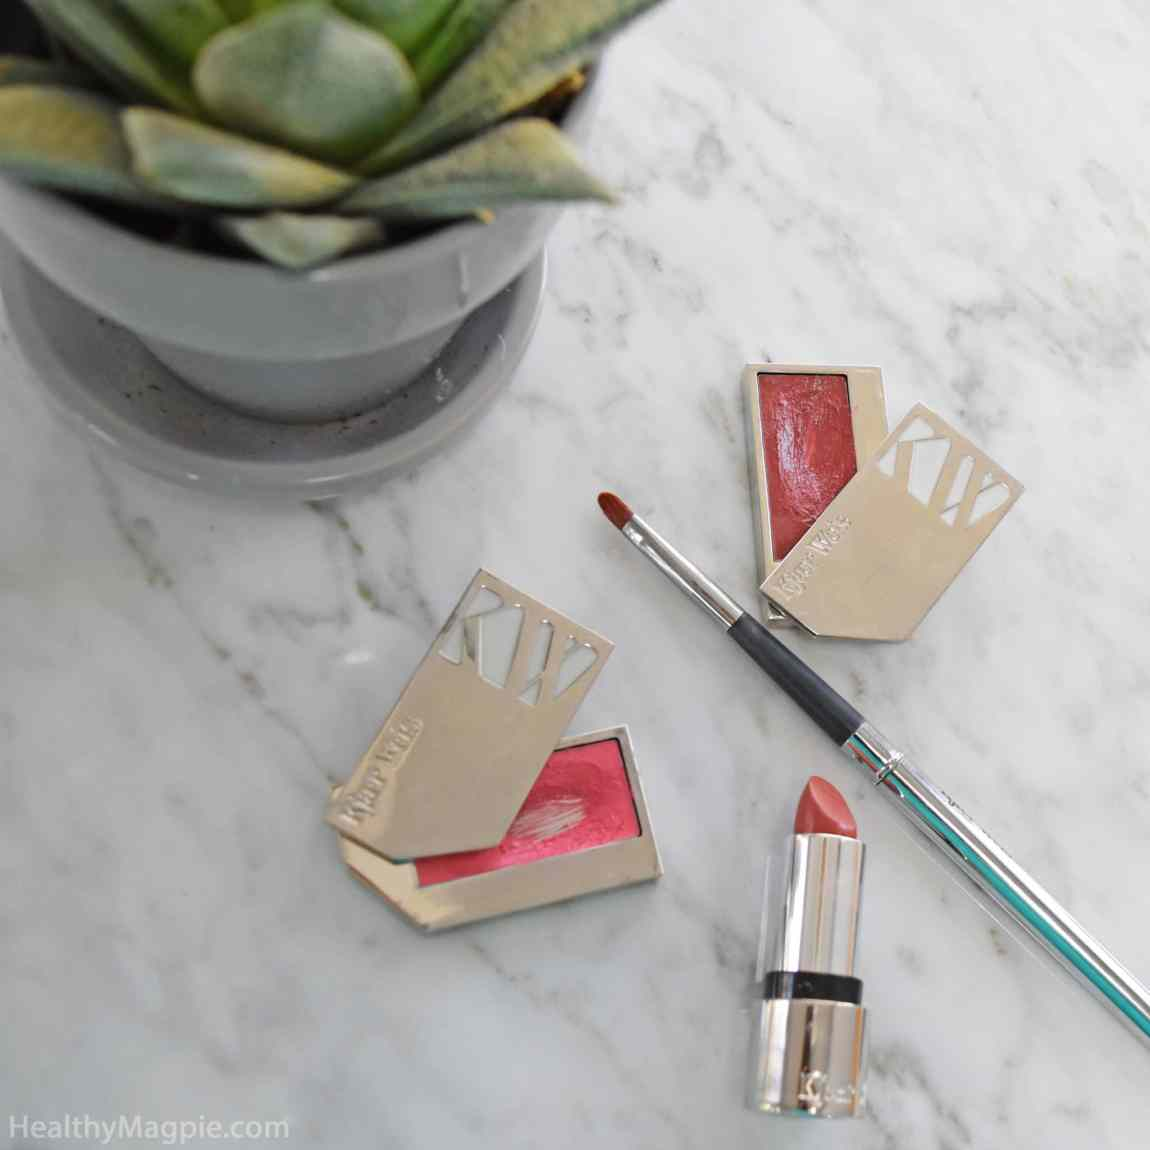 Picture, swatches and reviews of Kjaer Weis organic lipstick in Believe and Kjaer Weis organic lip tints. Most days I use my Kjaer Weis lip brush to apply a mix of both Sensuous Plum and Bliss Full lip tints.